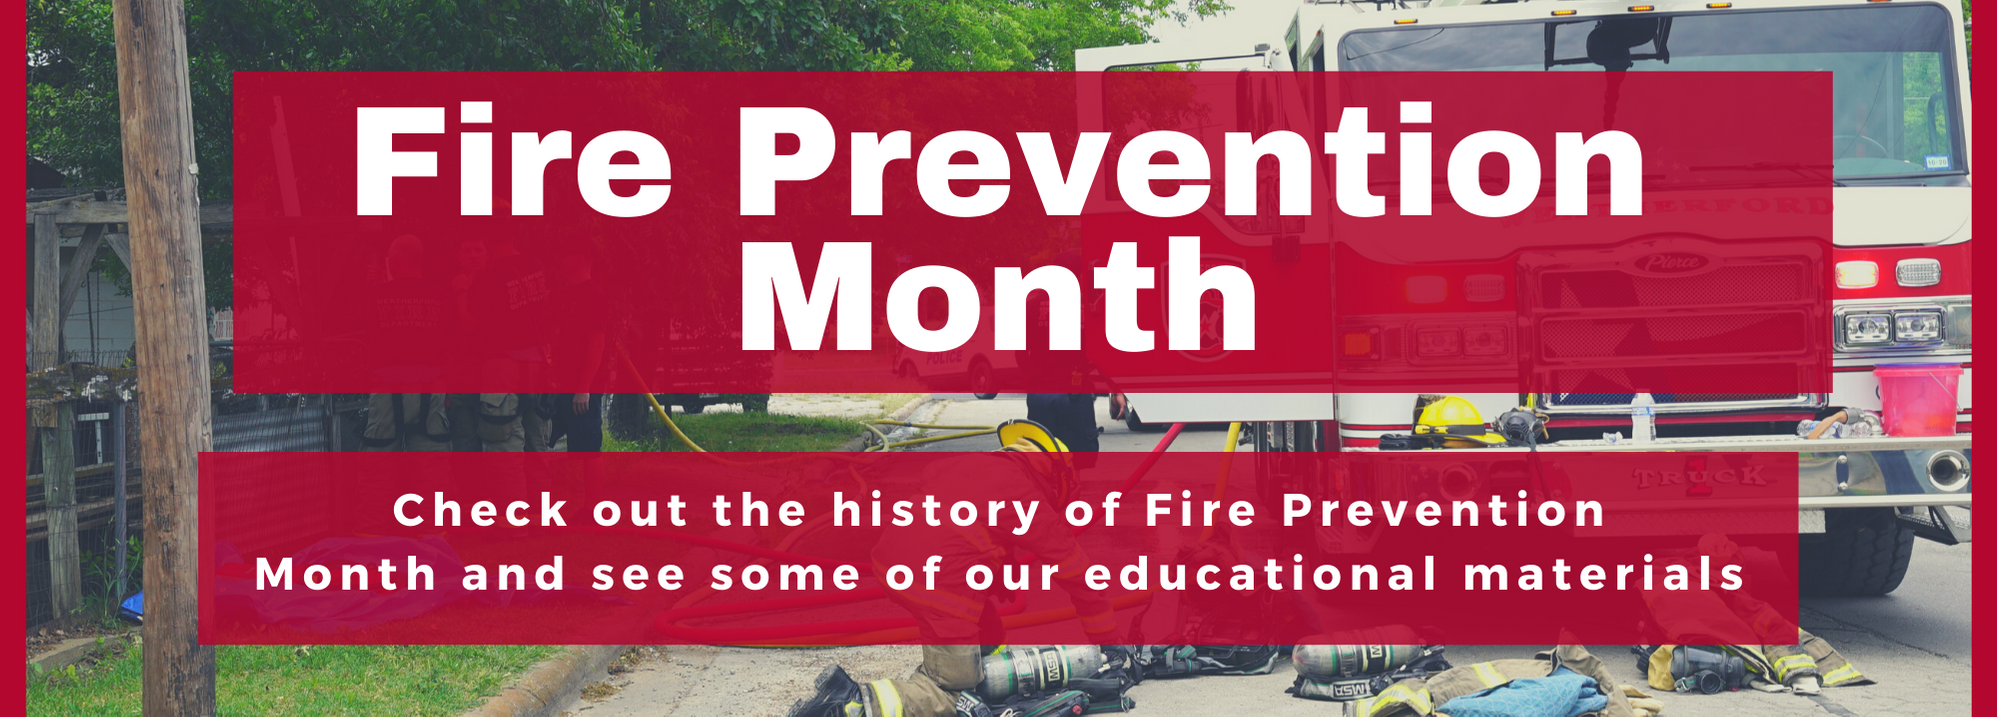 Fire Prevention Month - website banner